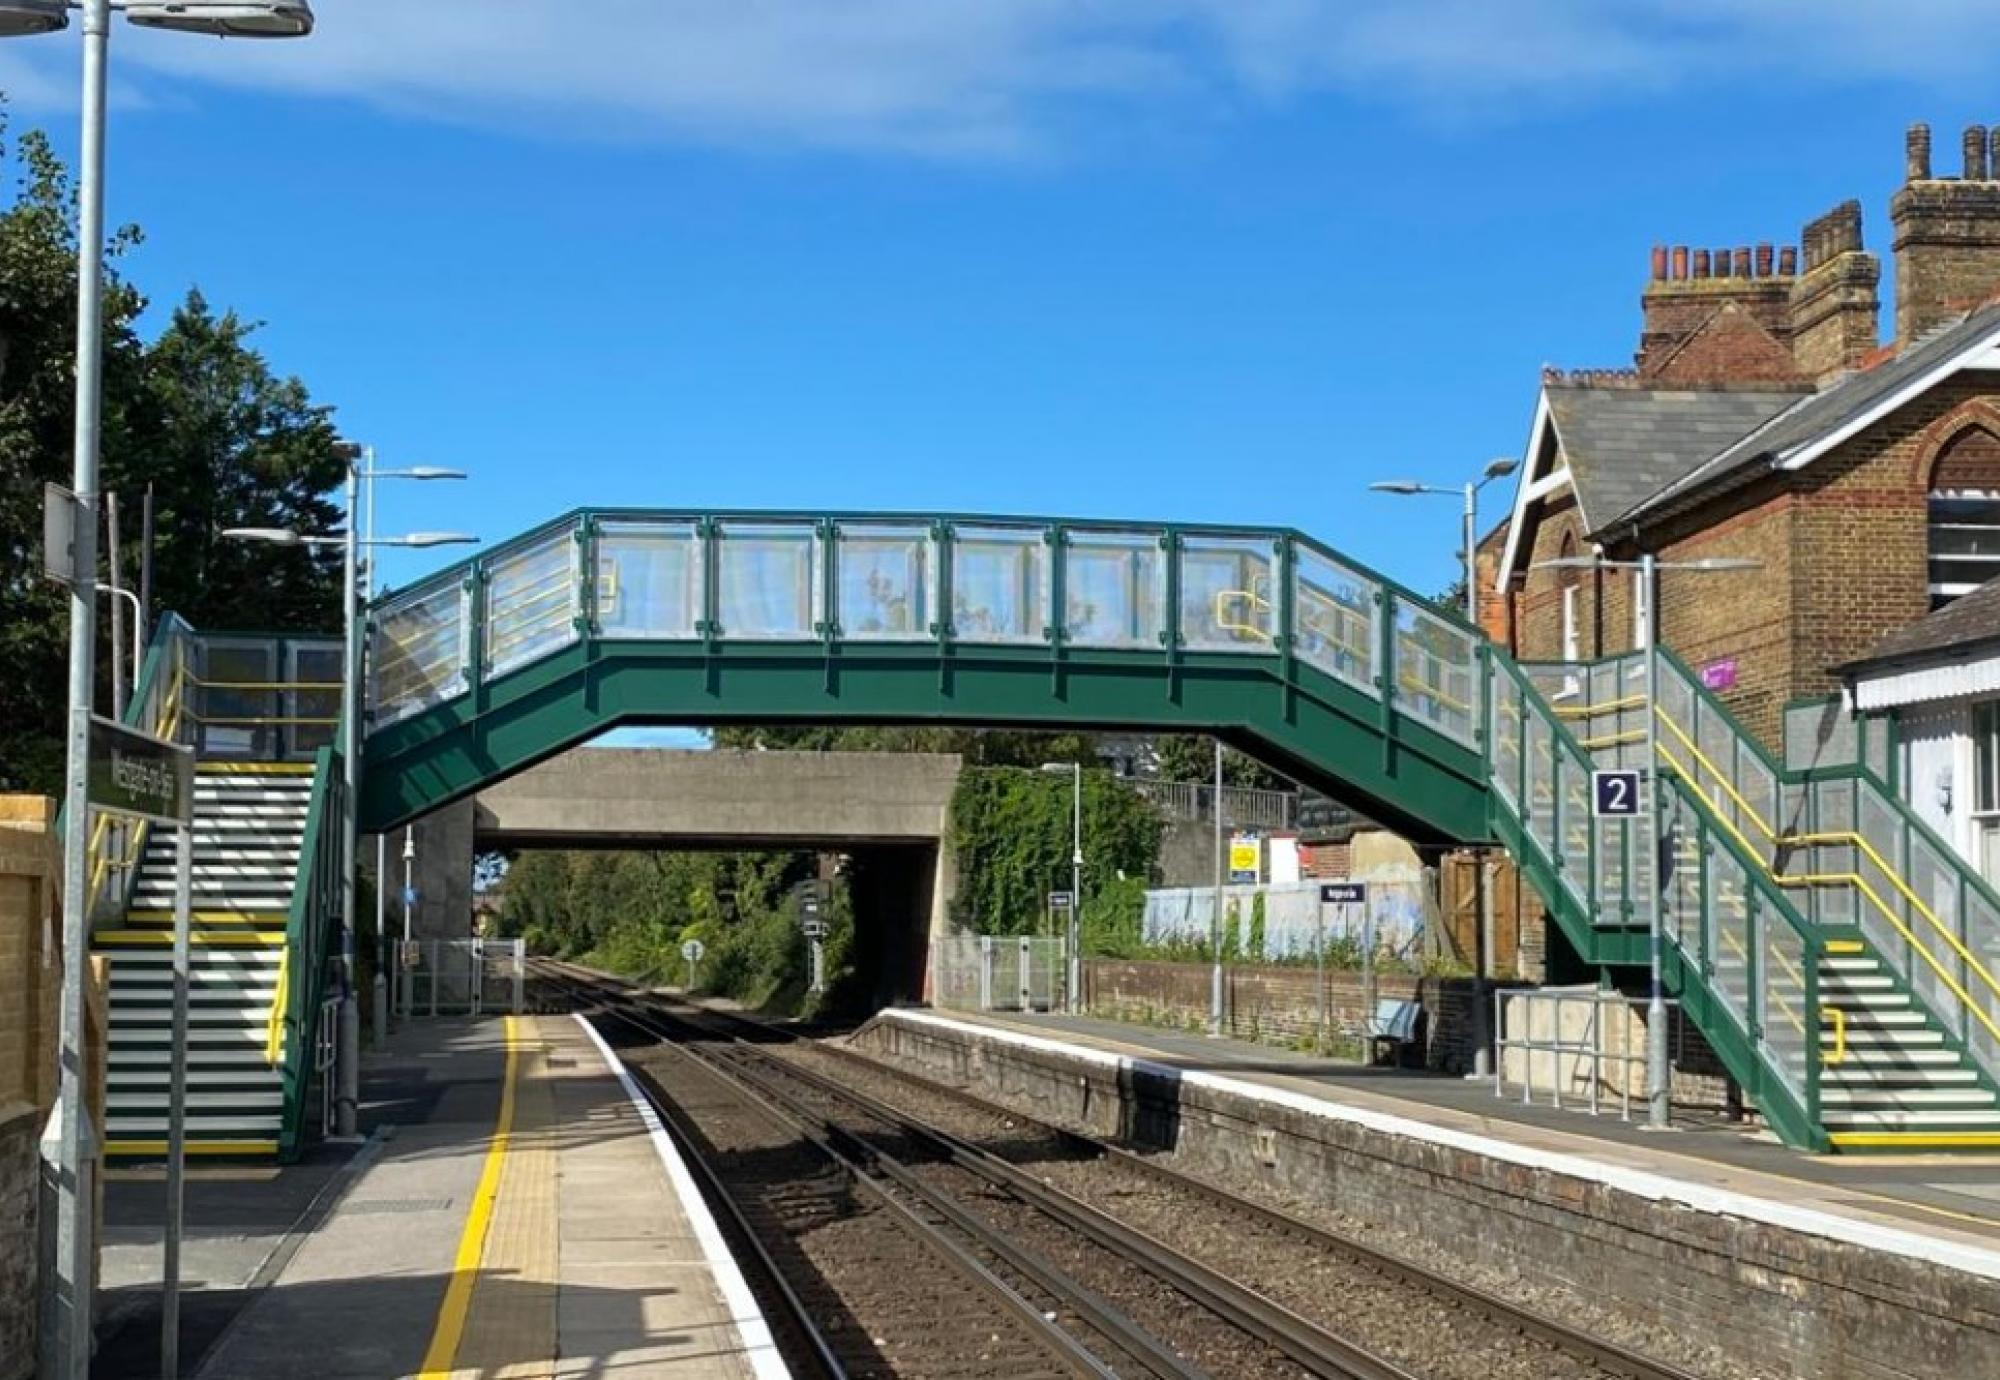 New bridge at Westgate-on-Sea